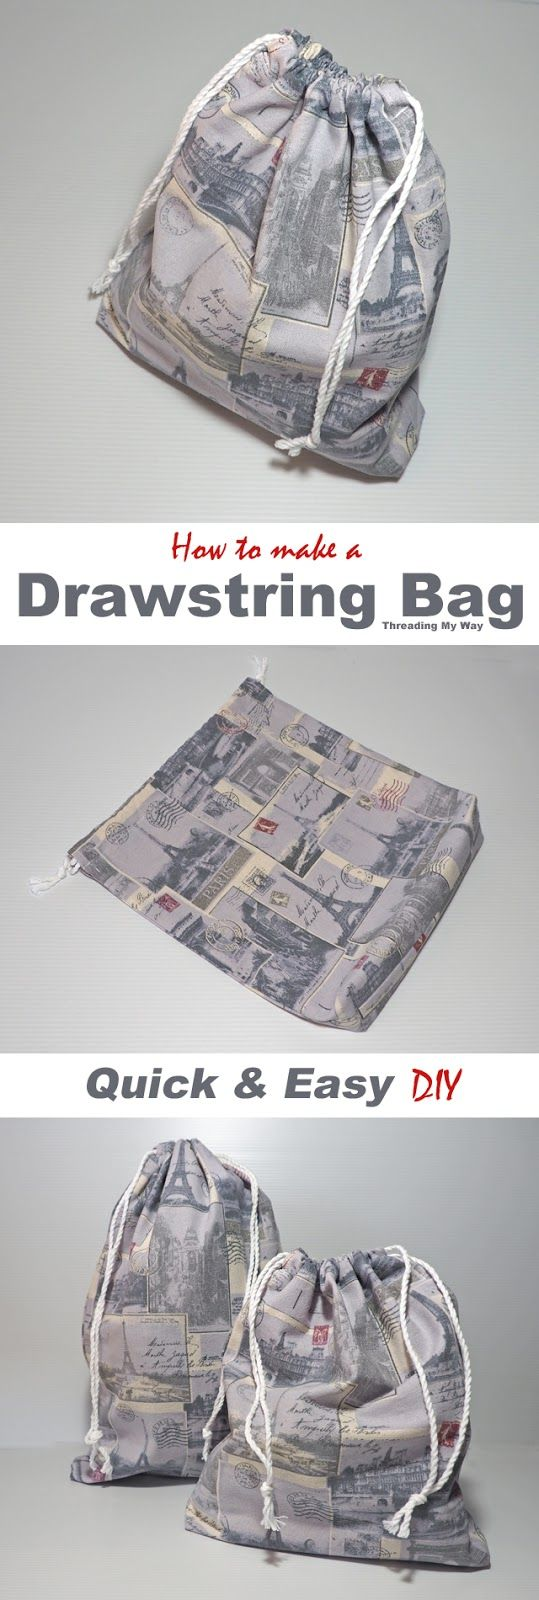 Quick and Easy to make Drawstring Bag ~ Tutorial | DIY | Pinterest ...